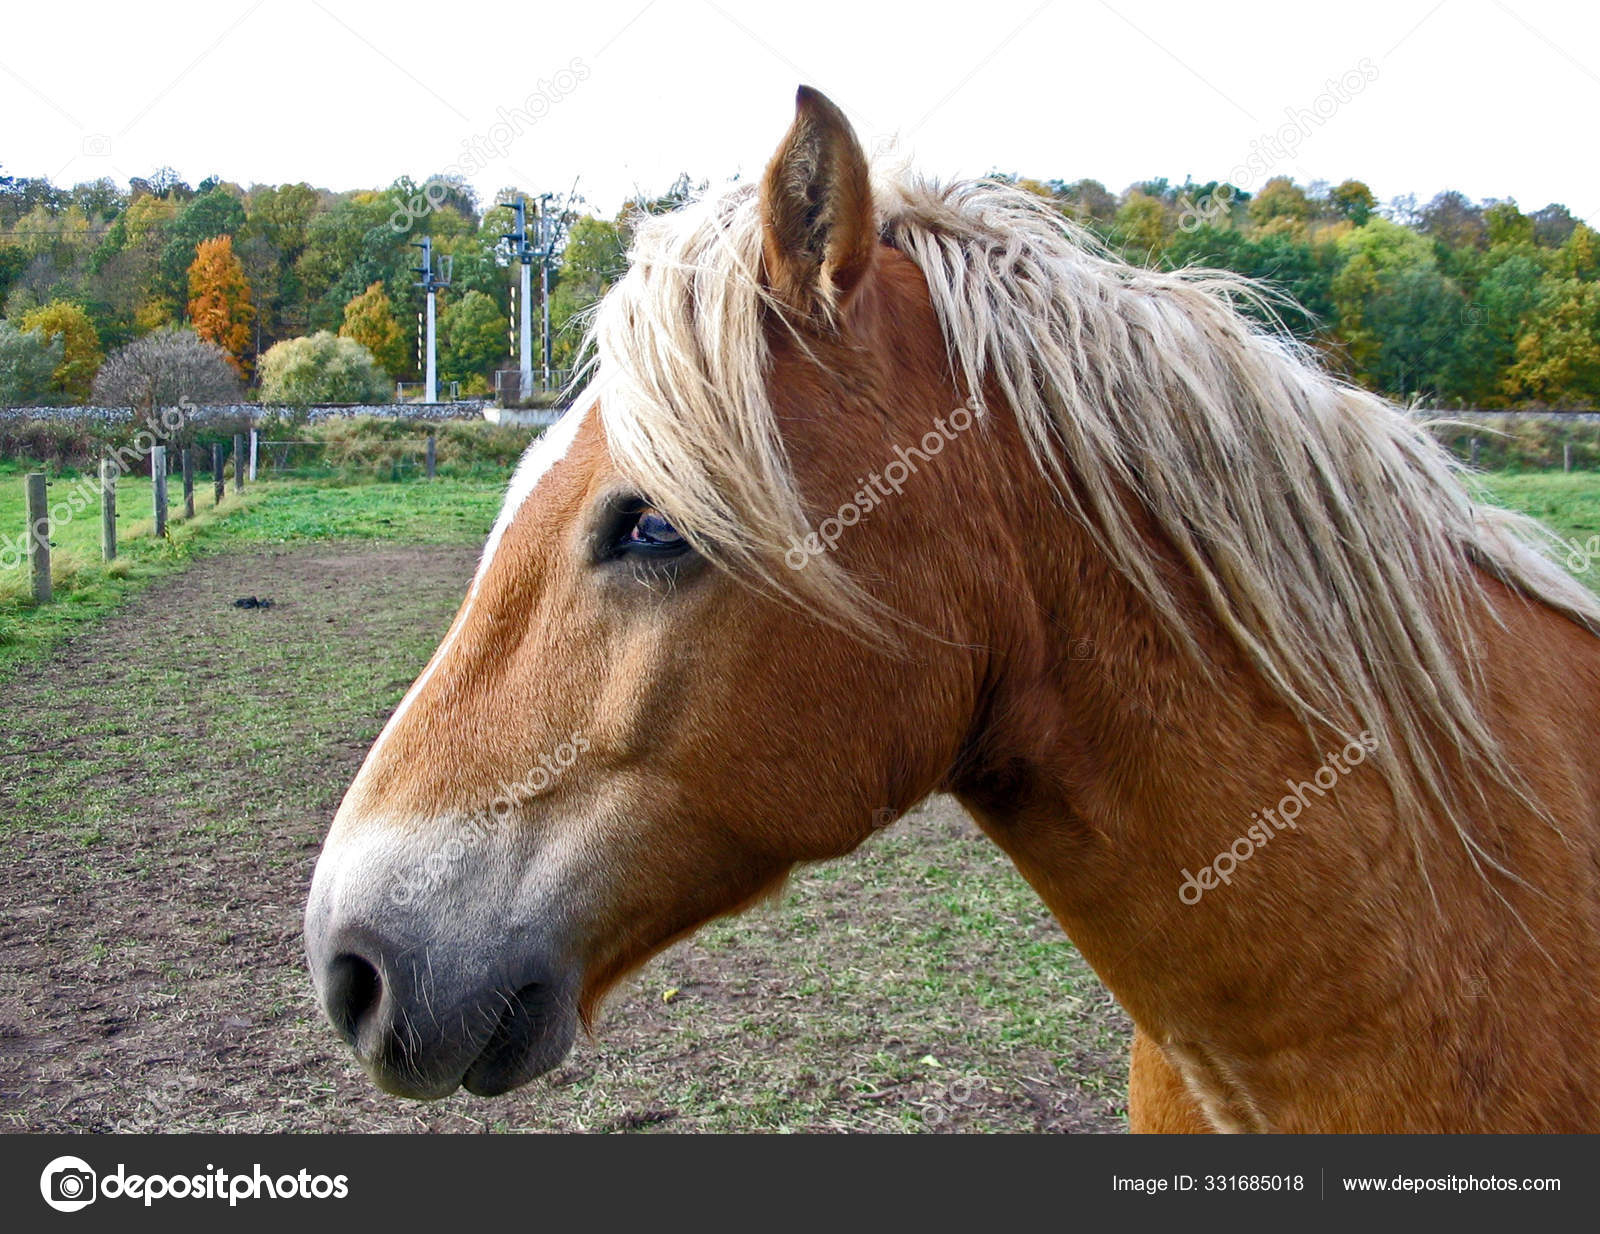 Cute Horse Wild Nature Stock Photo C Panthermediaseller 331685018